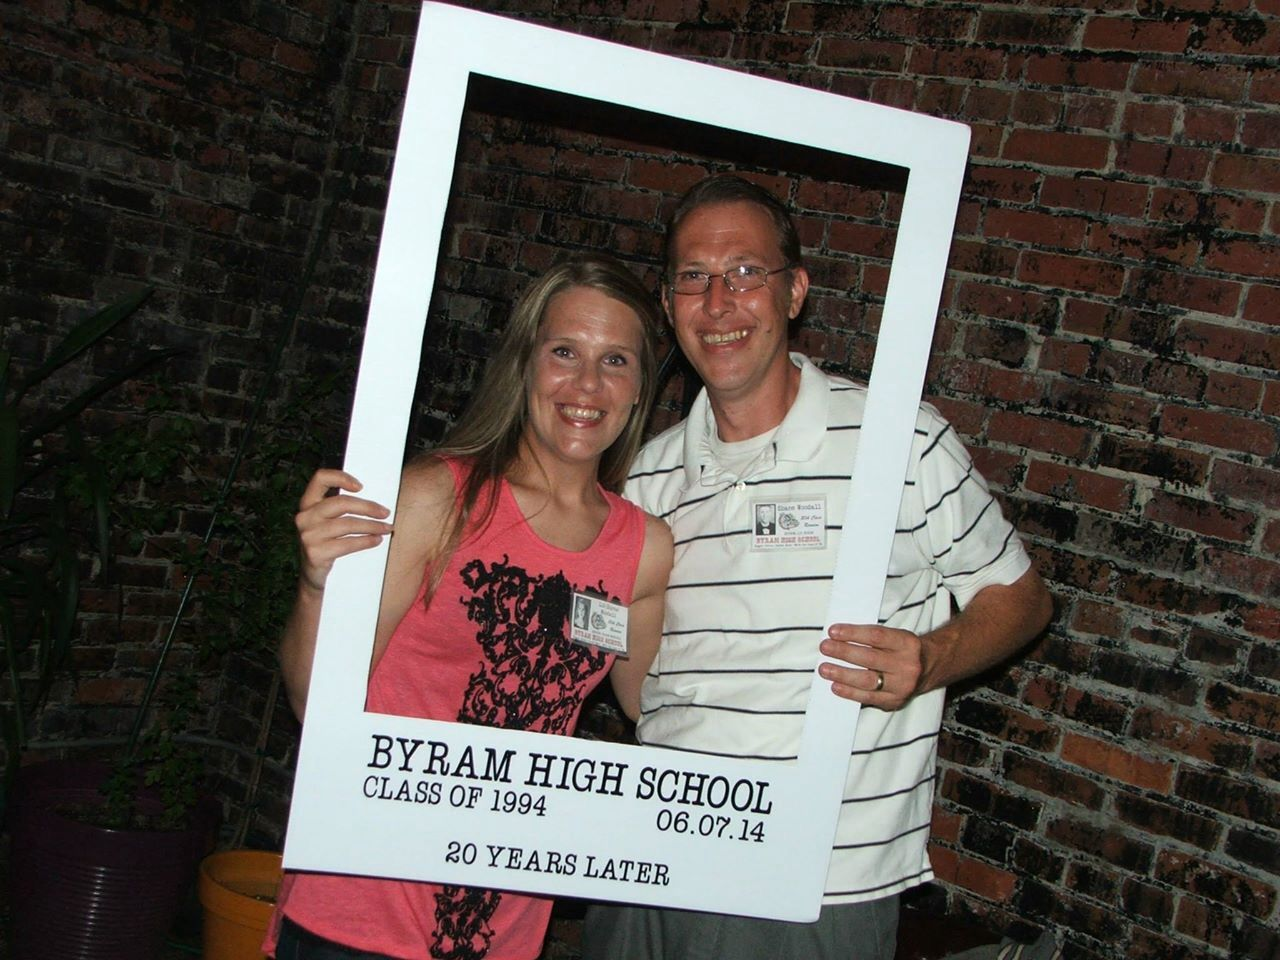 Class Reunion Photo Booth Frame 24x36 Corrugated Board Vinyl